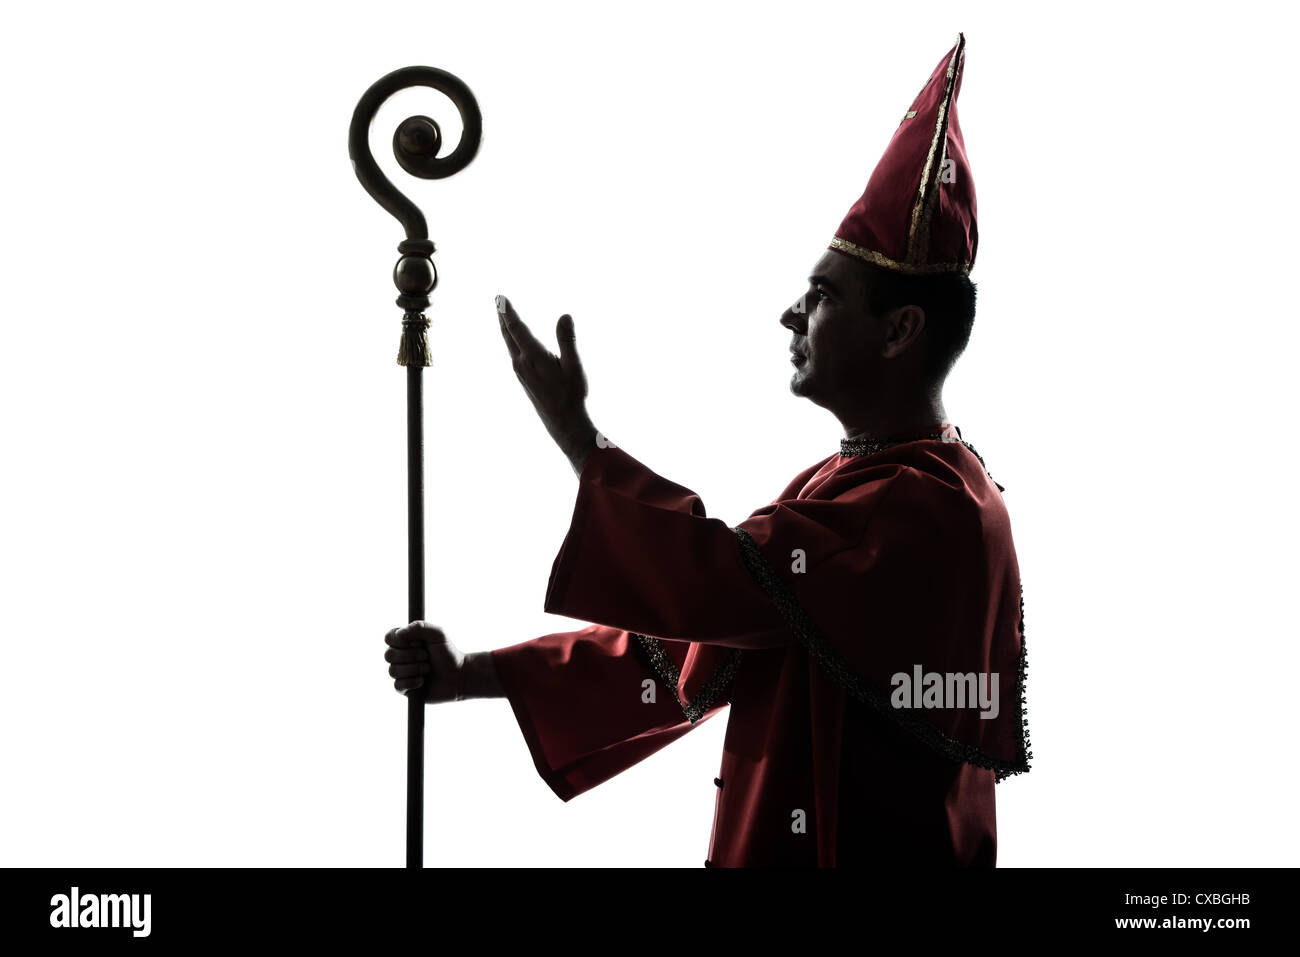 one man cardinal bishop silhouette saluting blessing in studio isolated on white background - Stock Image